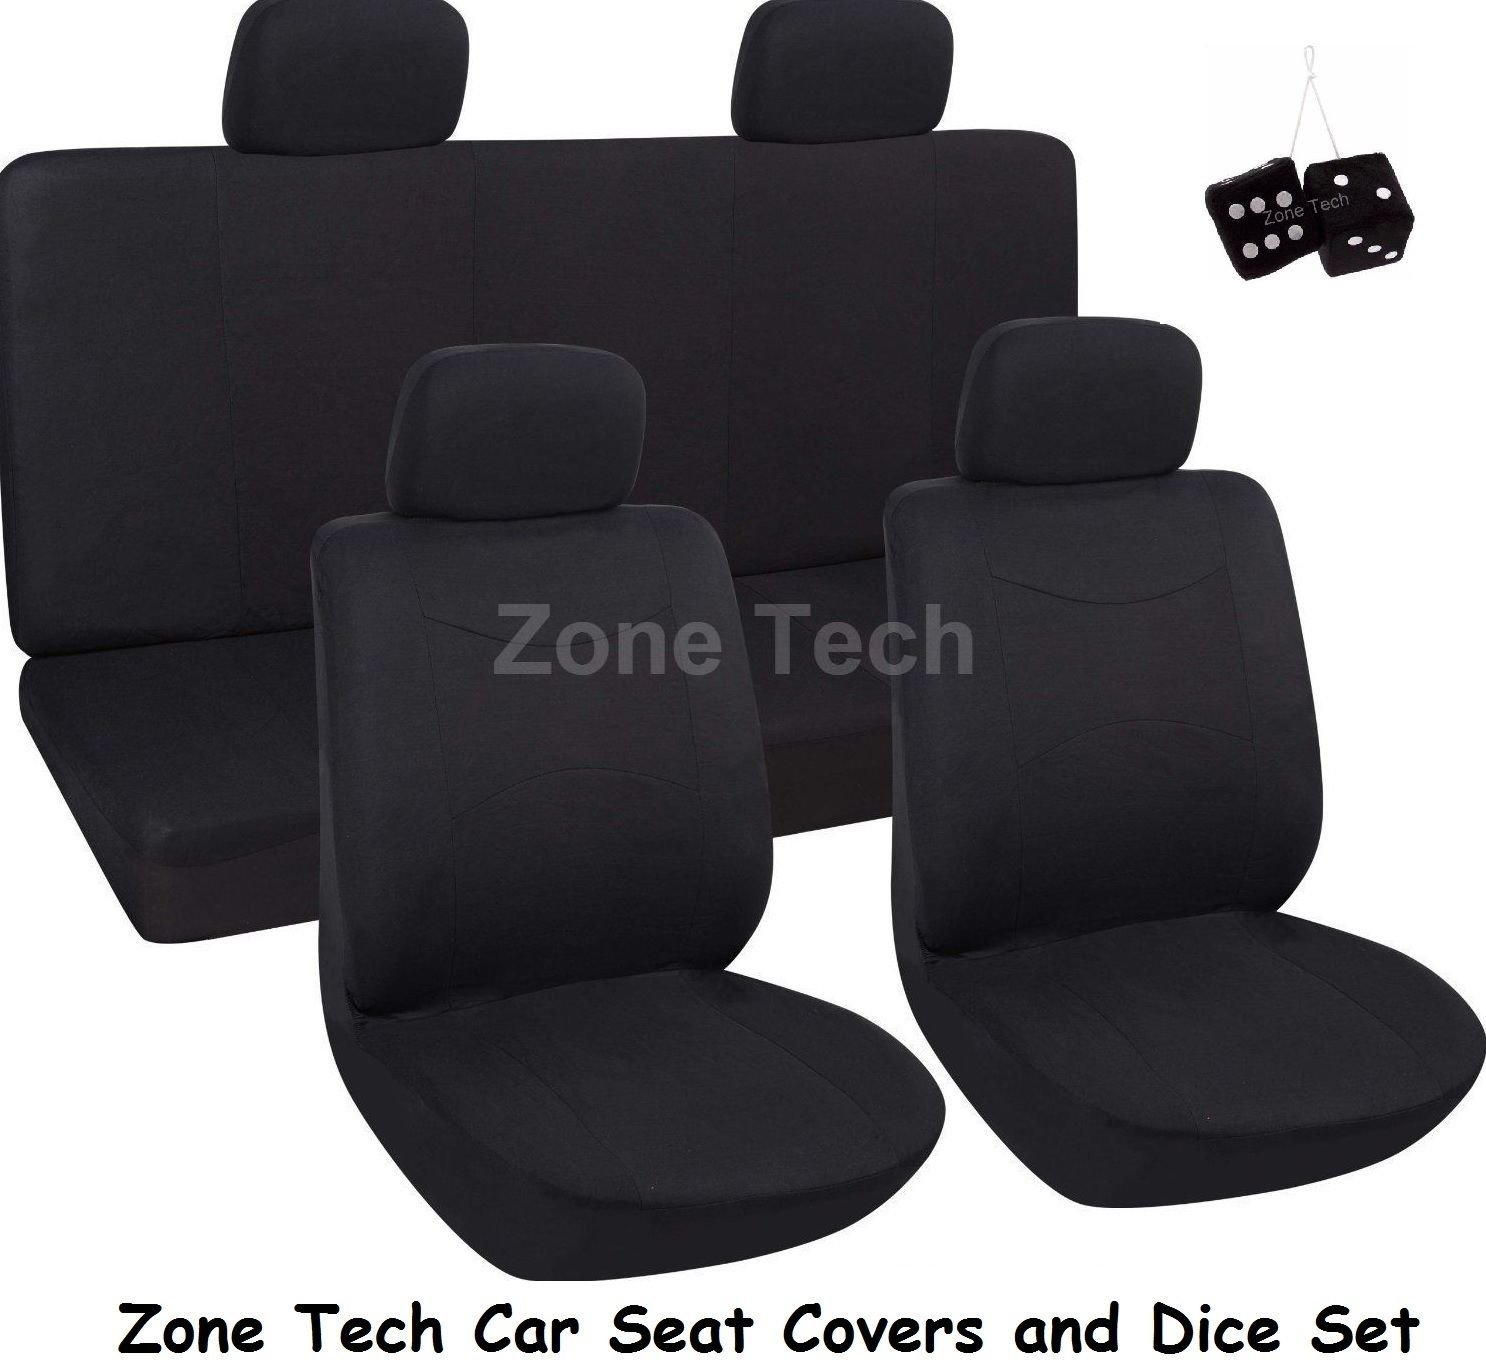 Zone Tech Universal Fit Premium Quality Luxury Interior D?????????cor Cloth Full Set of Solid Black Seat Covers+ Pair of Classic Black Plush Hanging Fuzzy Dice Set